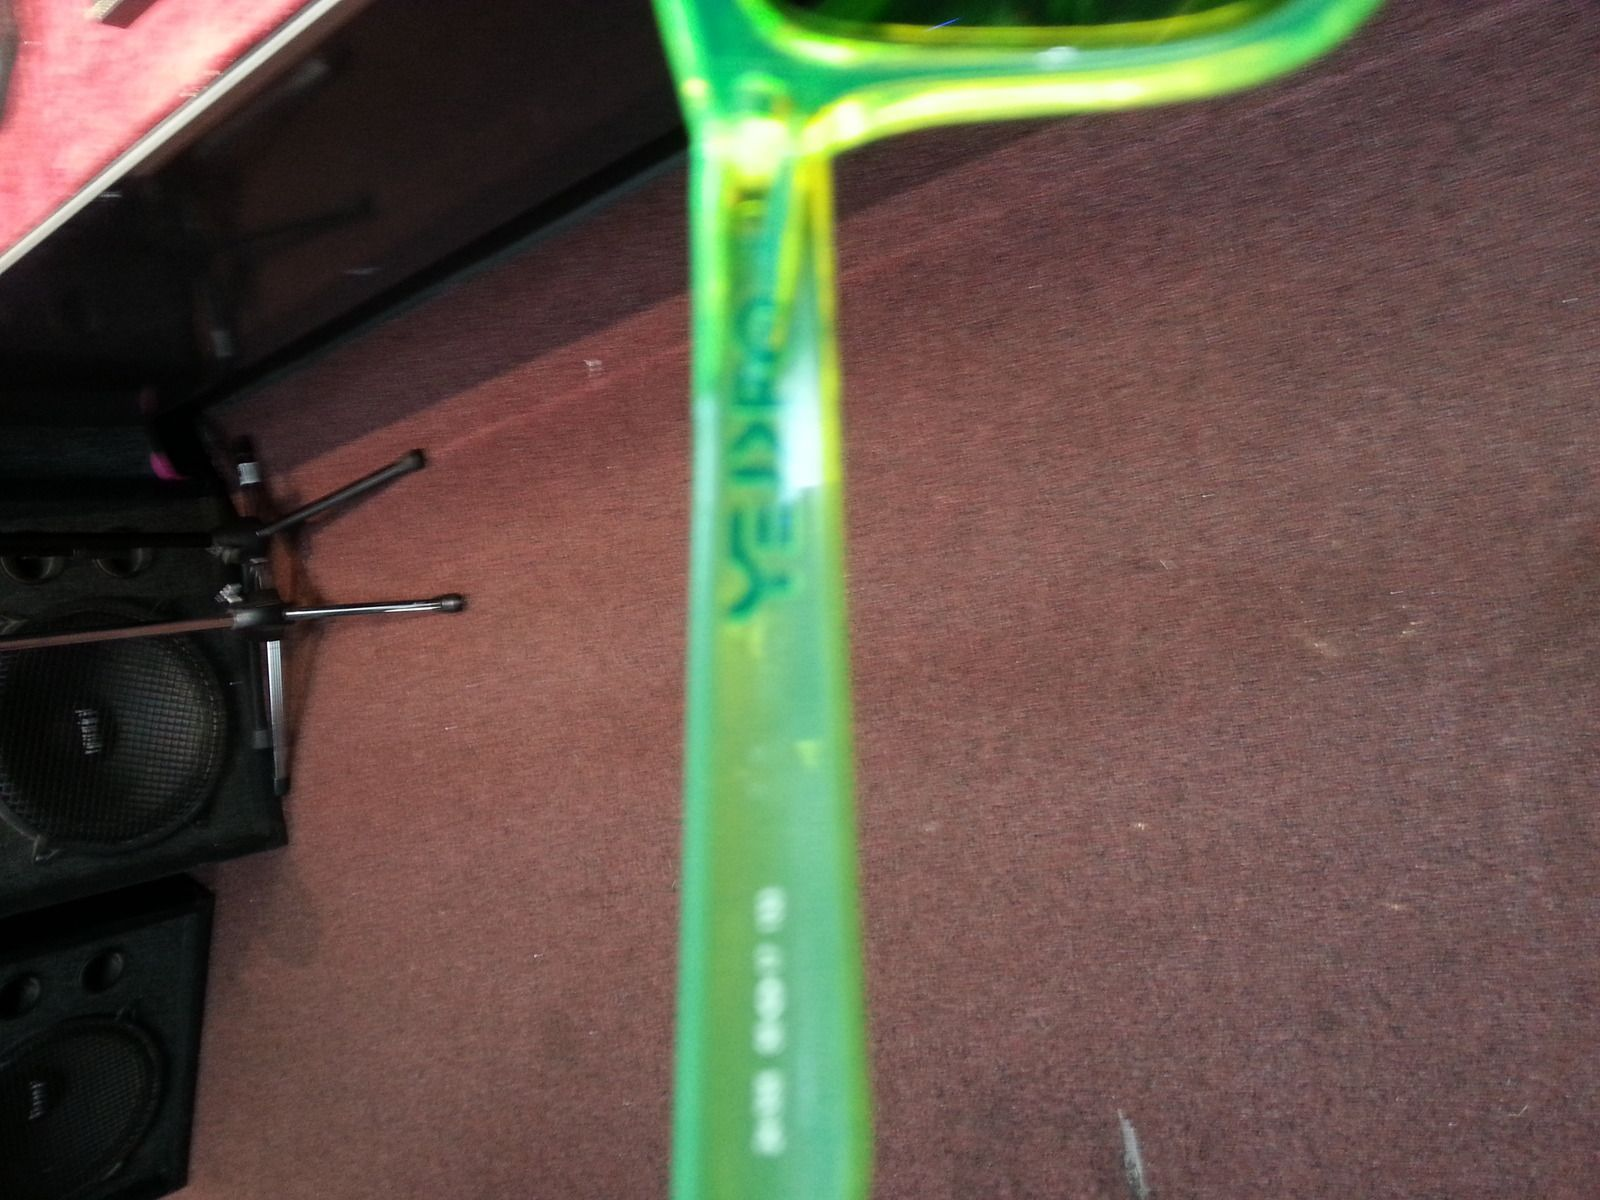 Local Pawn Shop Has These Are They Real? Value? - gax8.jpg